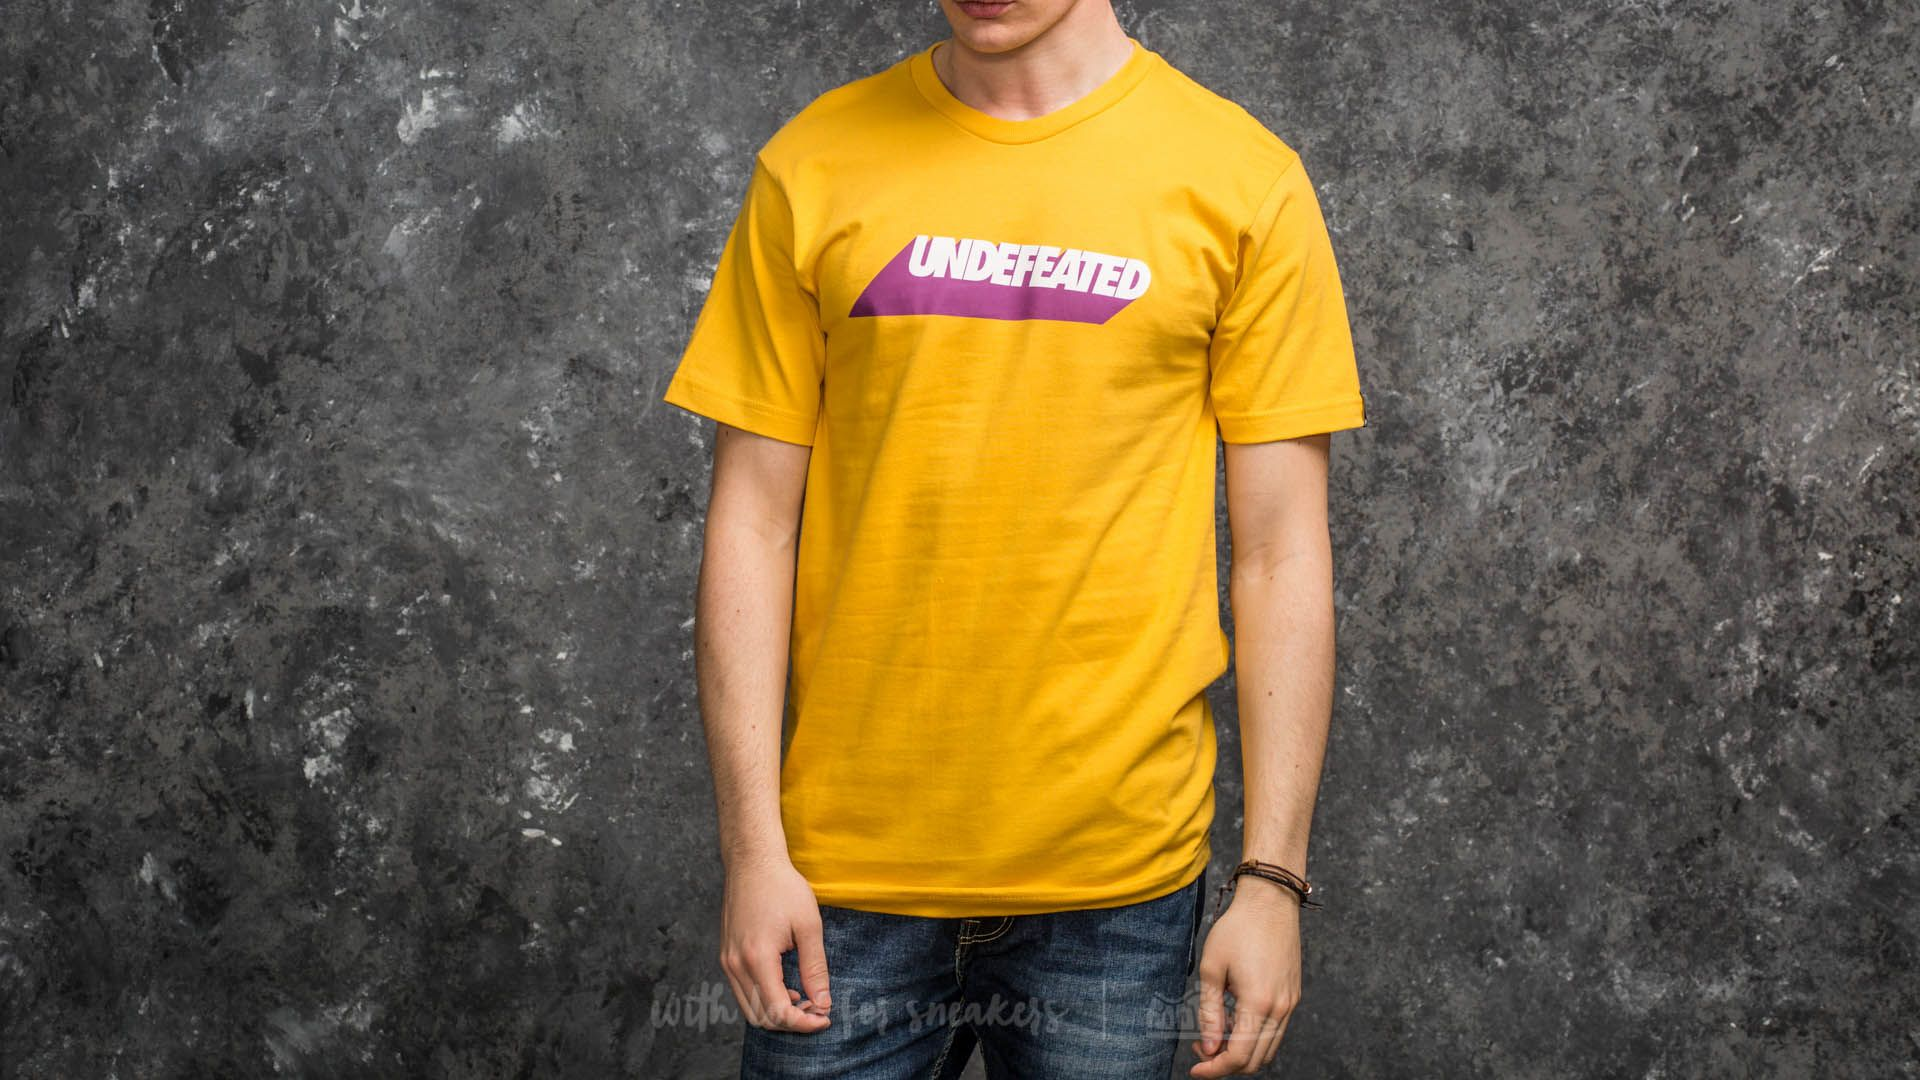 Undefeated Cast Tee Gold - 15043